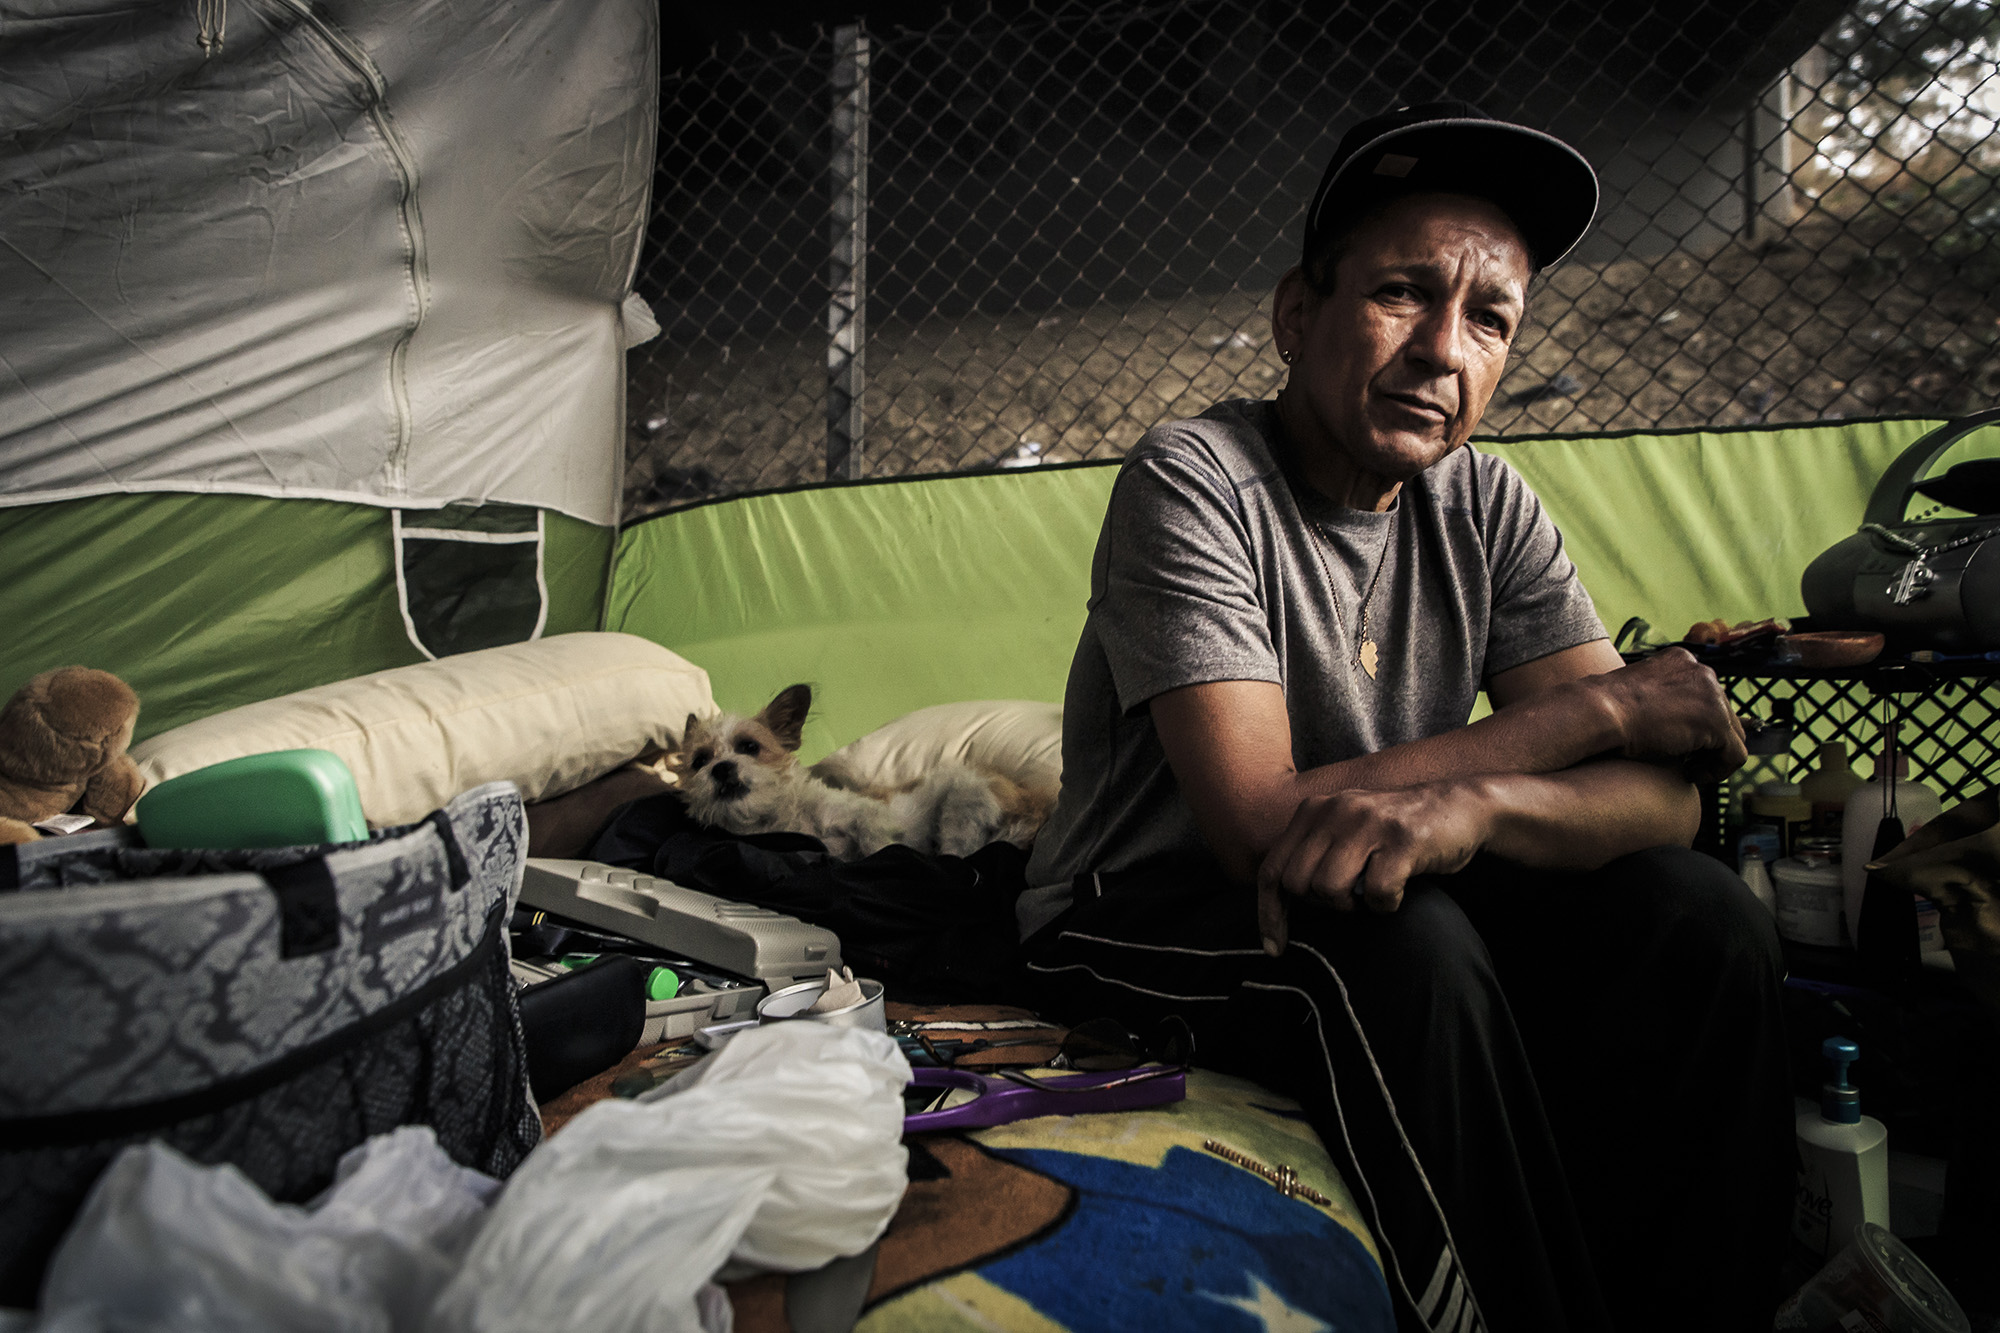 The Crime of Living Without a Home in Los Angeles